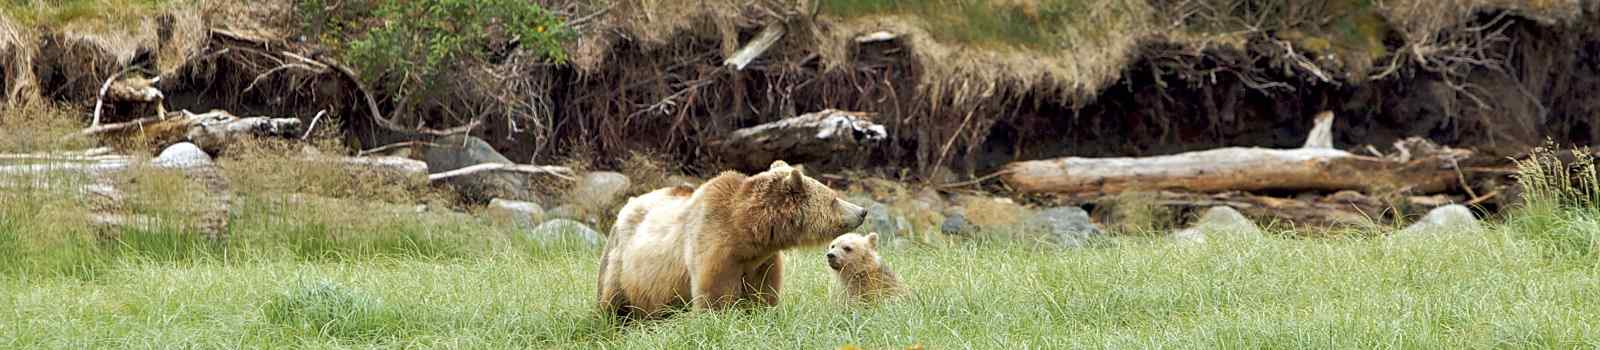 CAD-RM-RGR Kanada Vancouver Island Grizzly bear in Canadian nature playing with cub